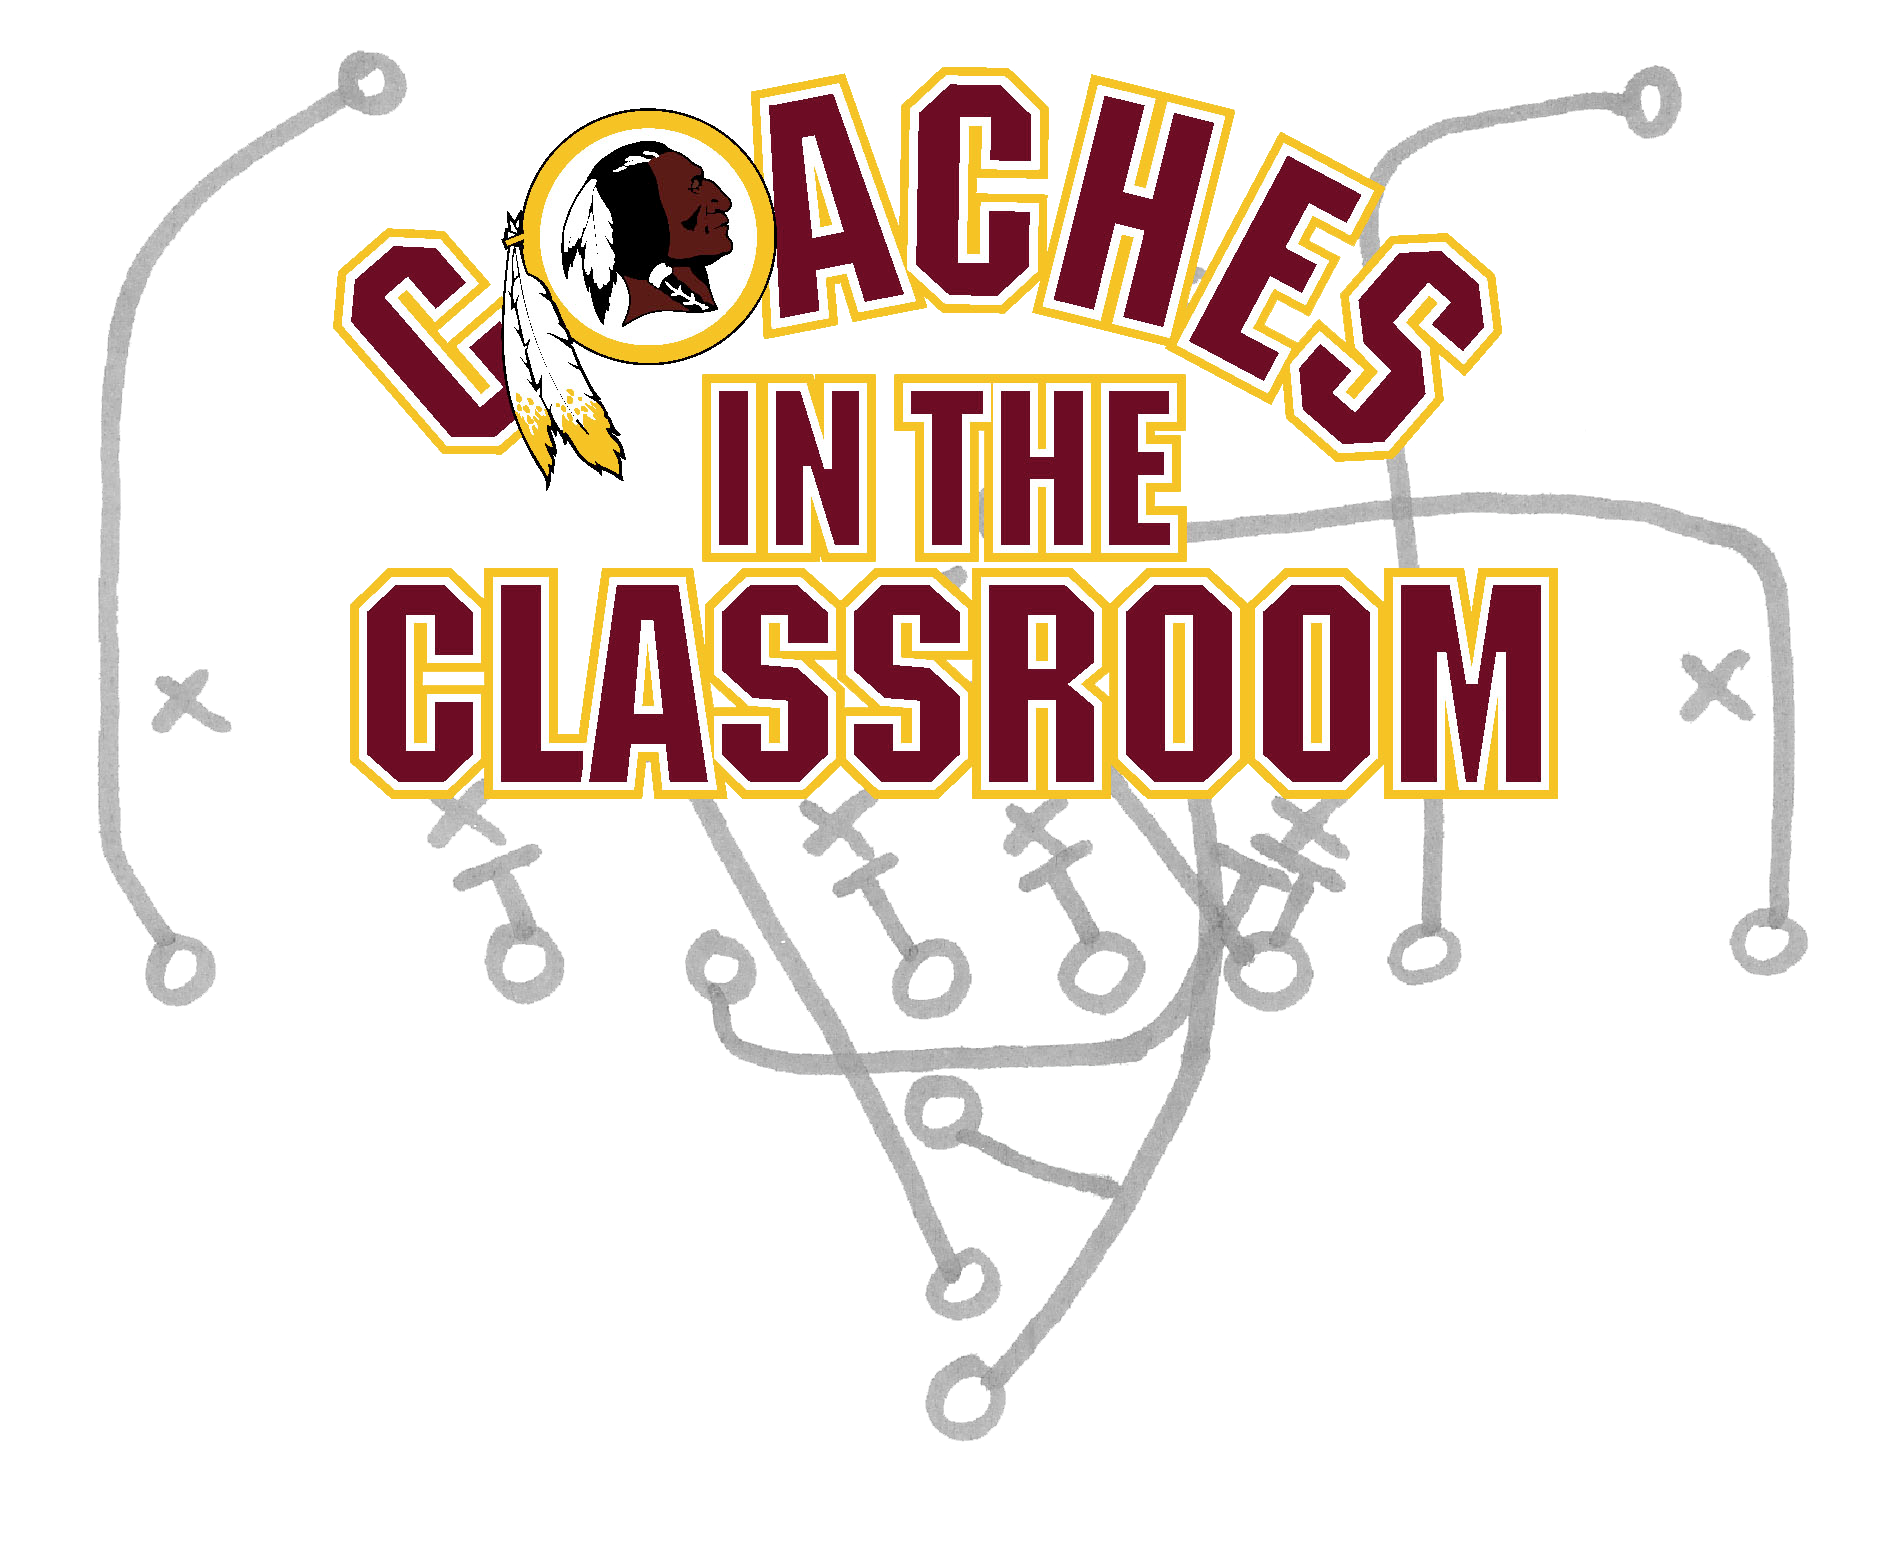 Coaches in the Classroom